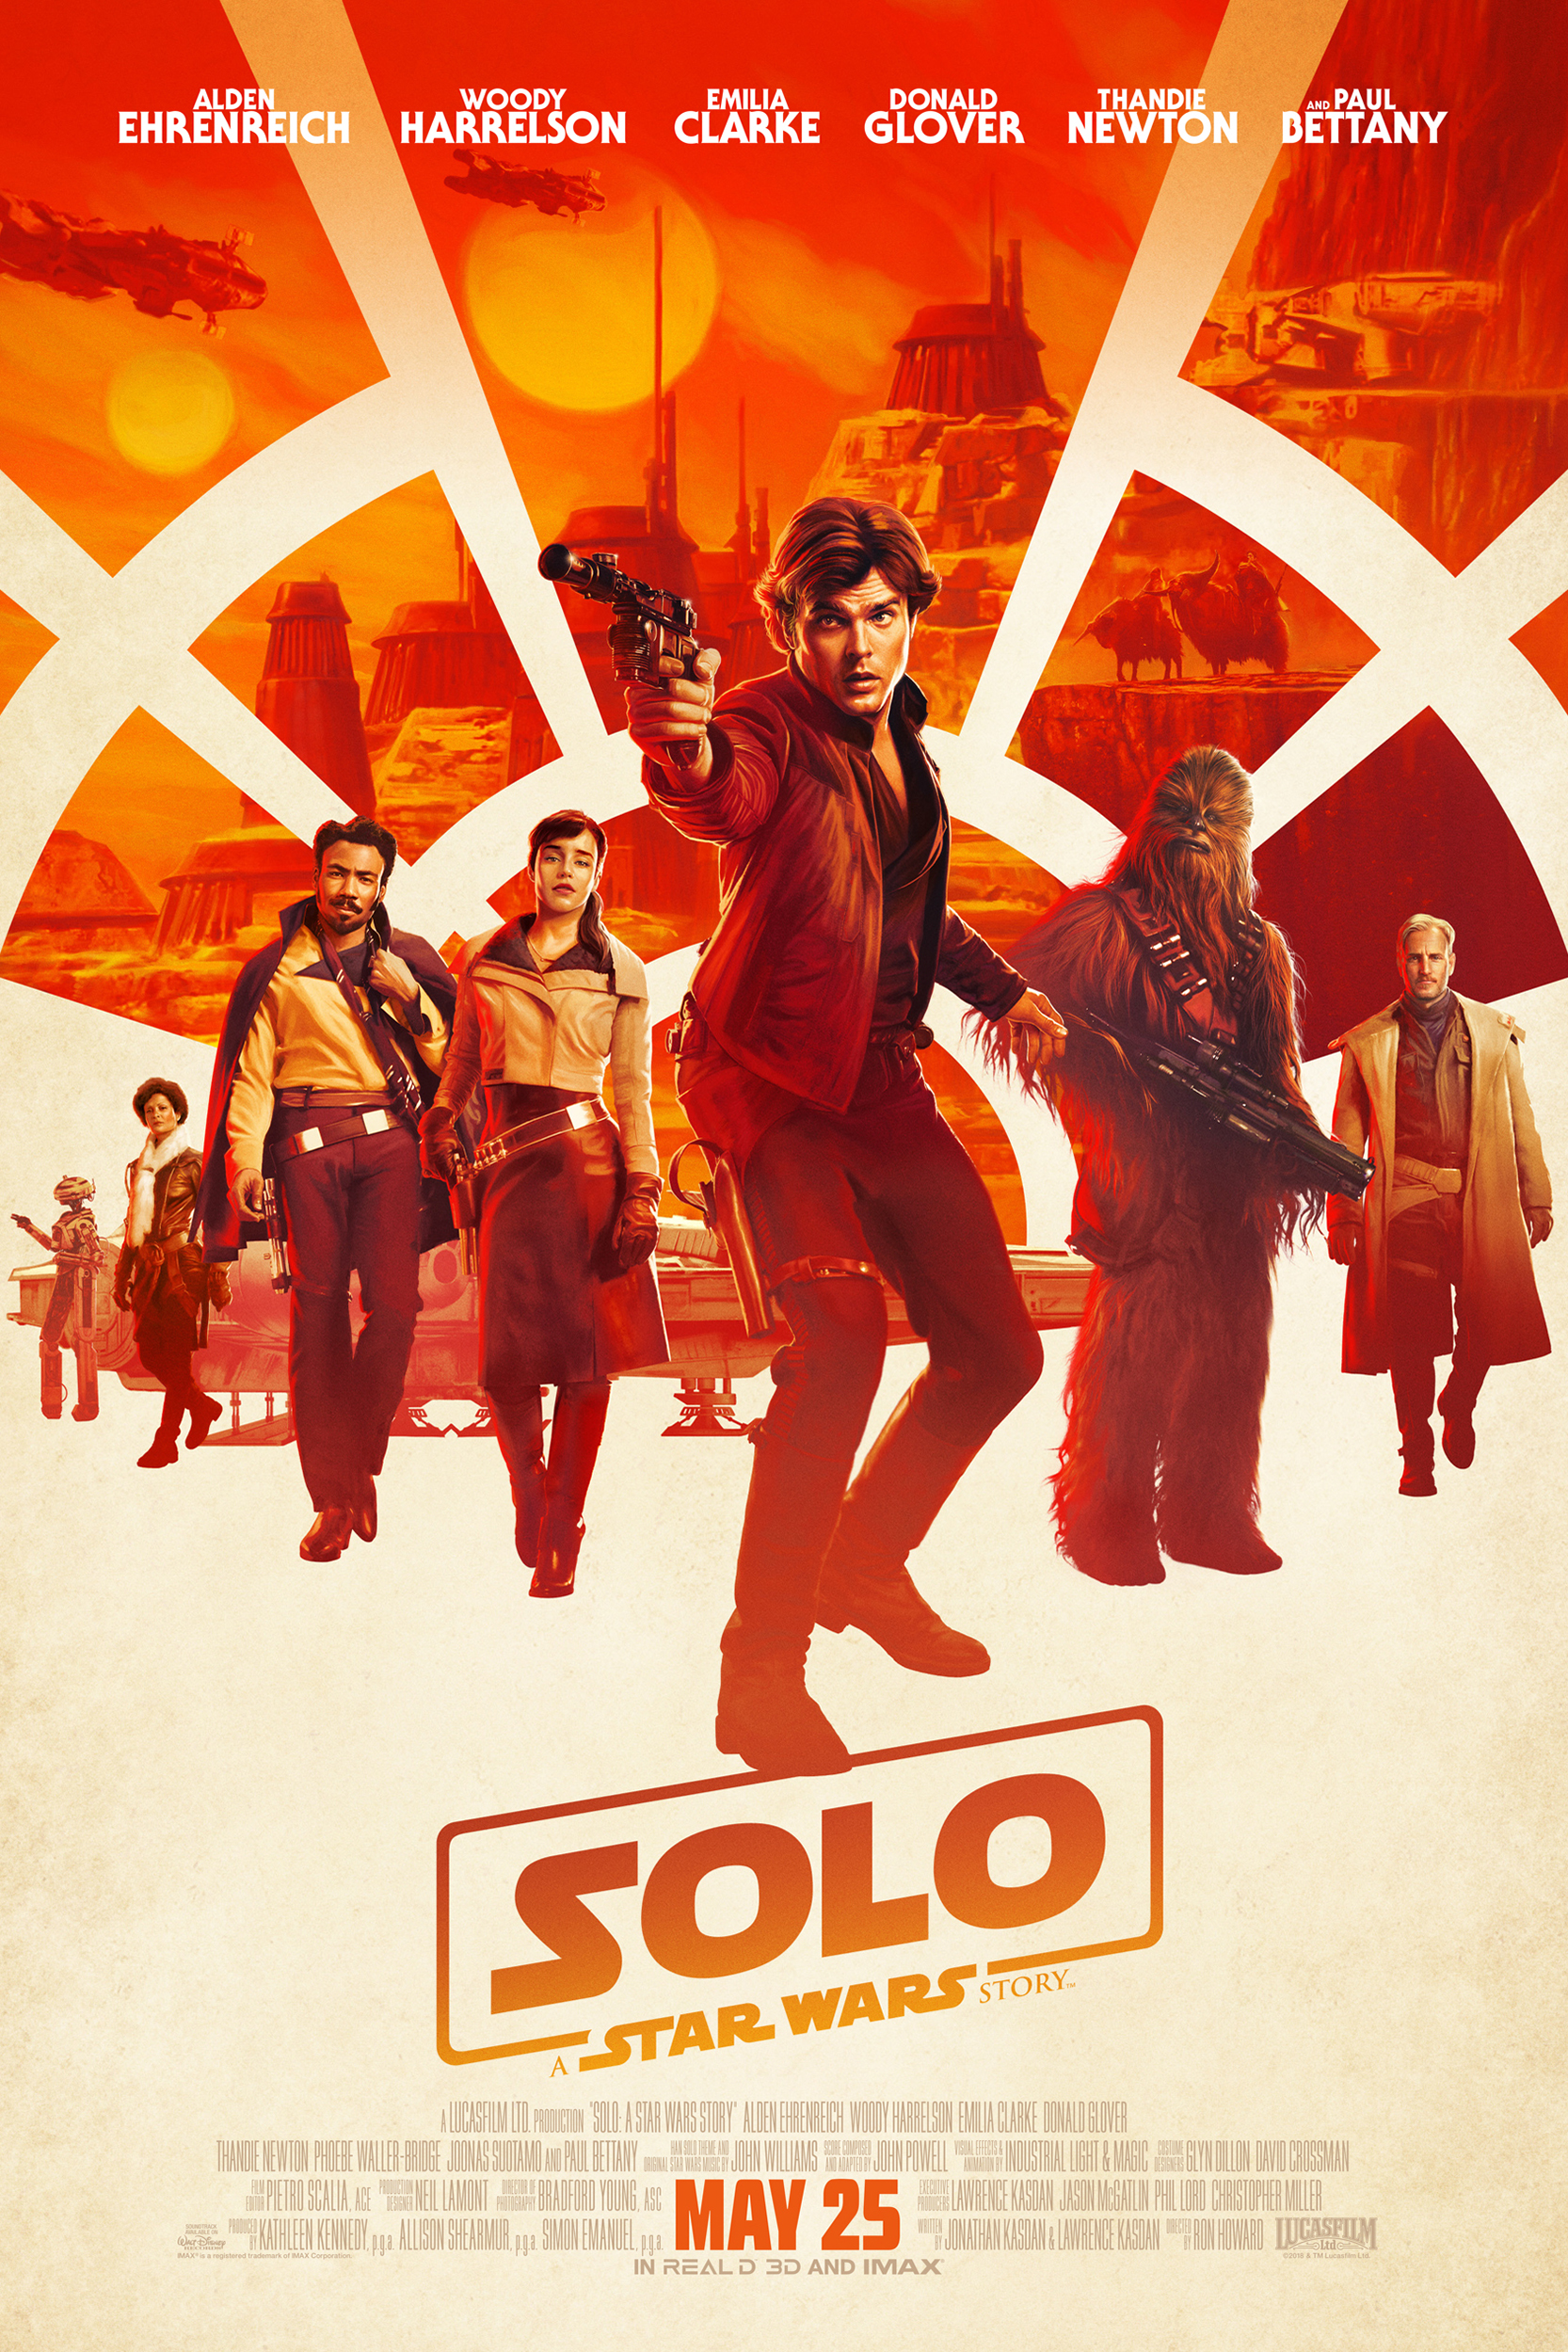 Poster for Solo: A Star Wars Story 3D